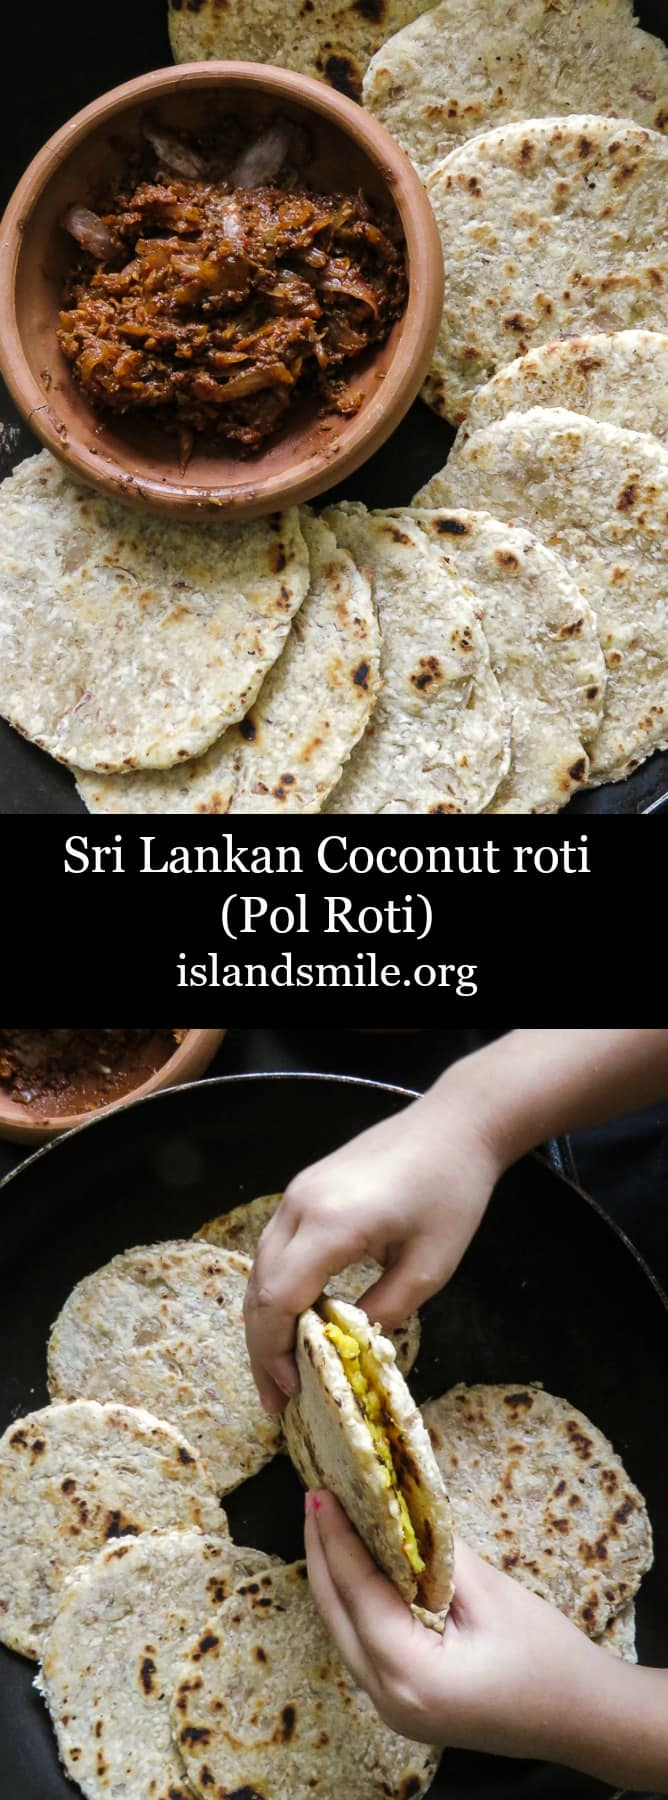 Sri Lankan Coconut roti(pol roti, flatbread). A rustic flatbread made up of flour, grated coconut with diced green chillies and Onions for extra texture. vegan, vegetarian, Sri Lankan breakfast #srilankan #roti #coconut #breakfast